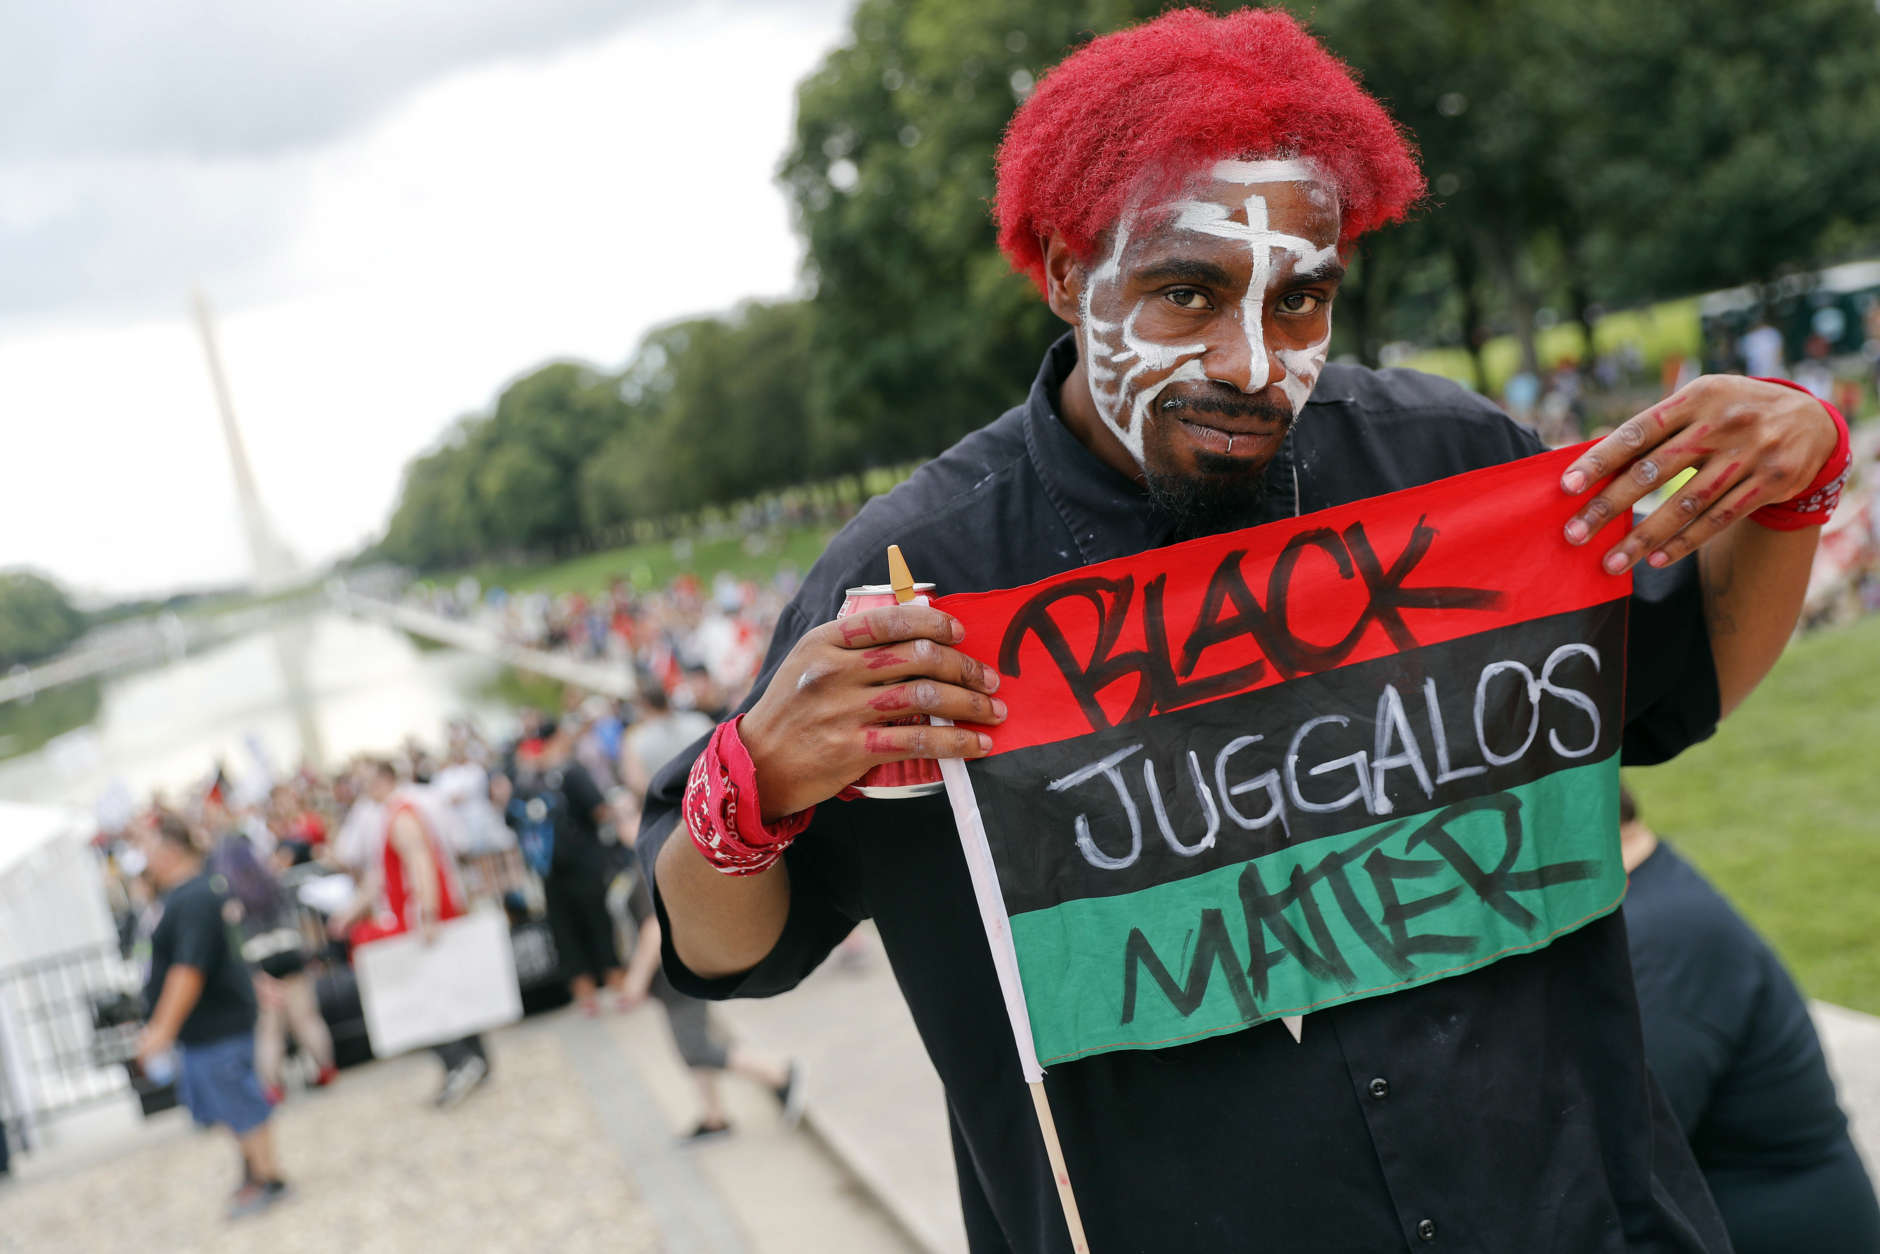 """Richard Williams, 29, of Oakland, Calif., joins other juggalos, as supporters of the rap group Insane Clown Posse are known, in front of the Lincoln Memorial in Washington during a rally, Saturday, Sept. 16, 2017, to protest and demand that the FBI rescind its classification of the juggalos as """"loosely organized hybrid gang."""" (AP Photo/Pablo Martinez Monsivais)"""